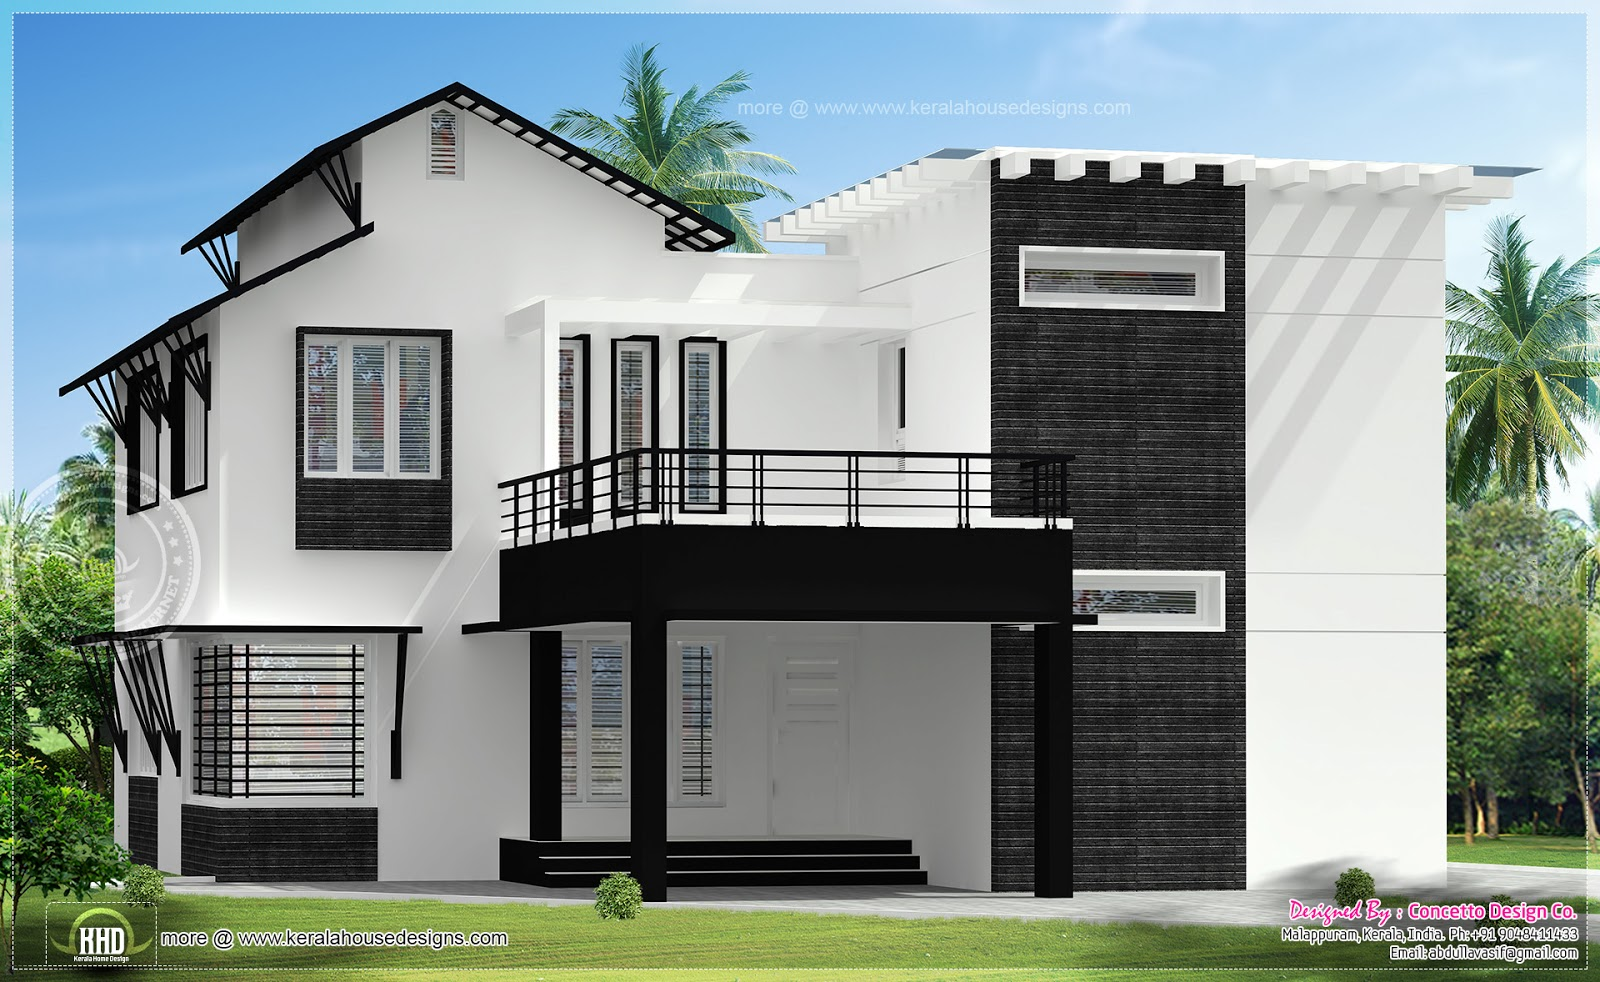 5 different house exteriors by concetto design kerala for Designed home plans